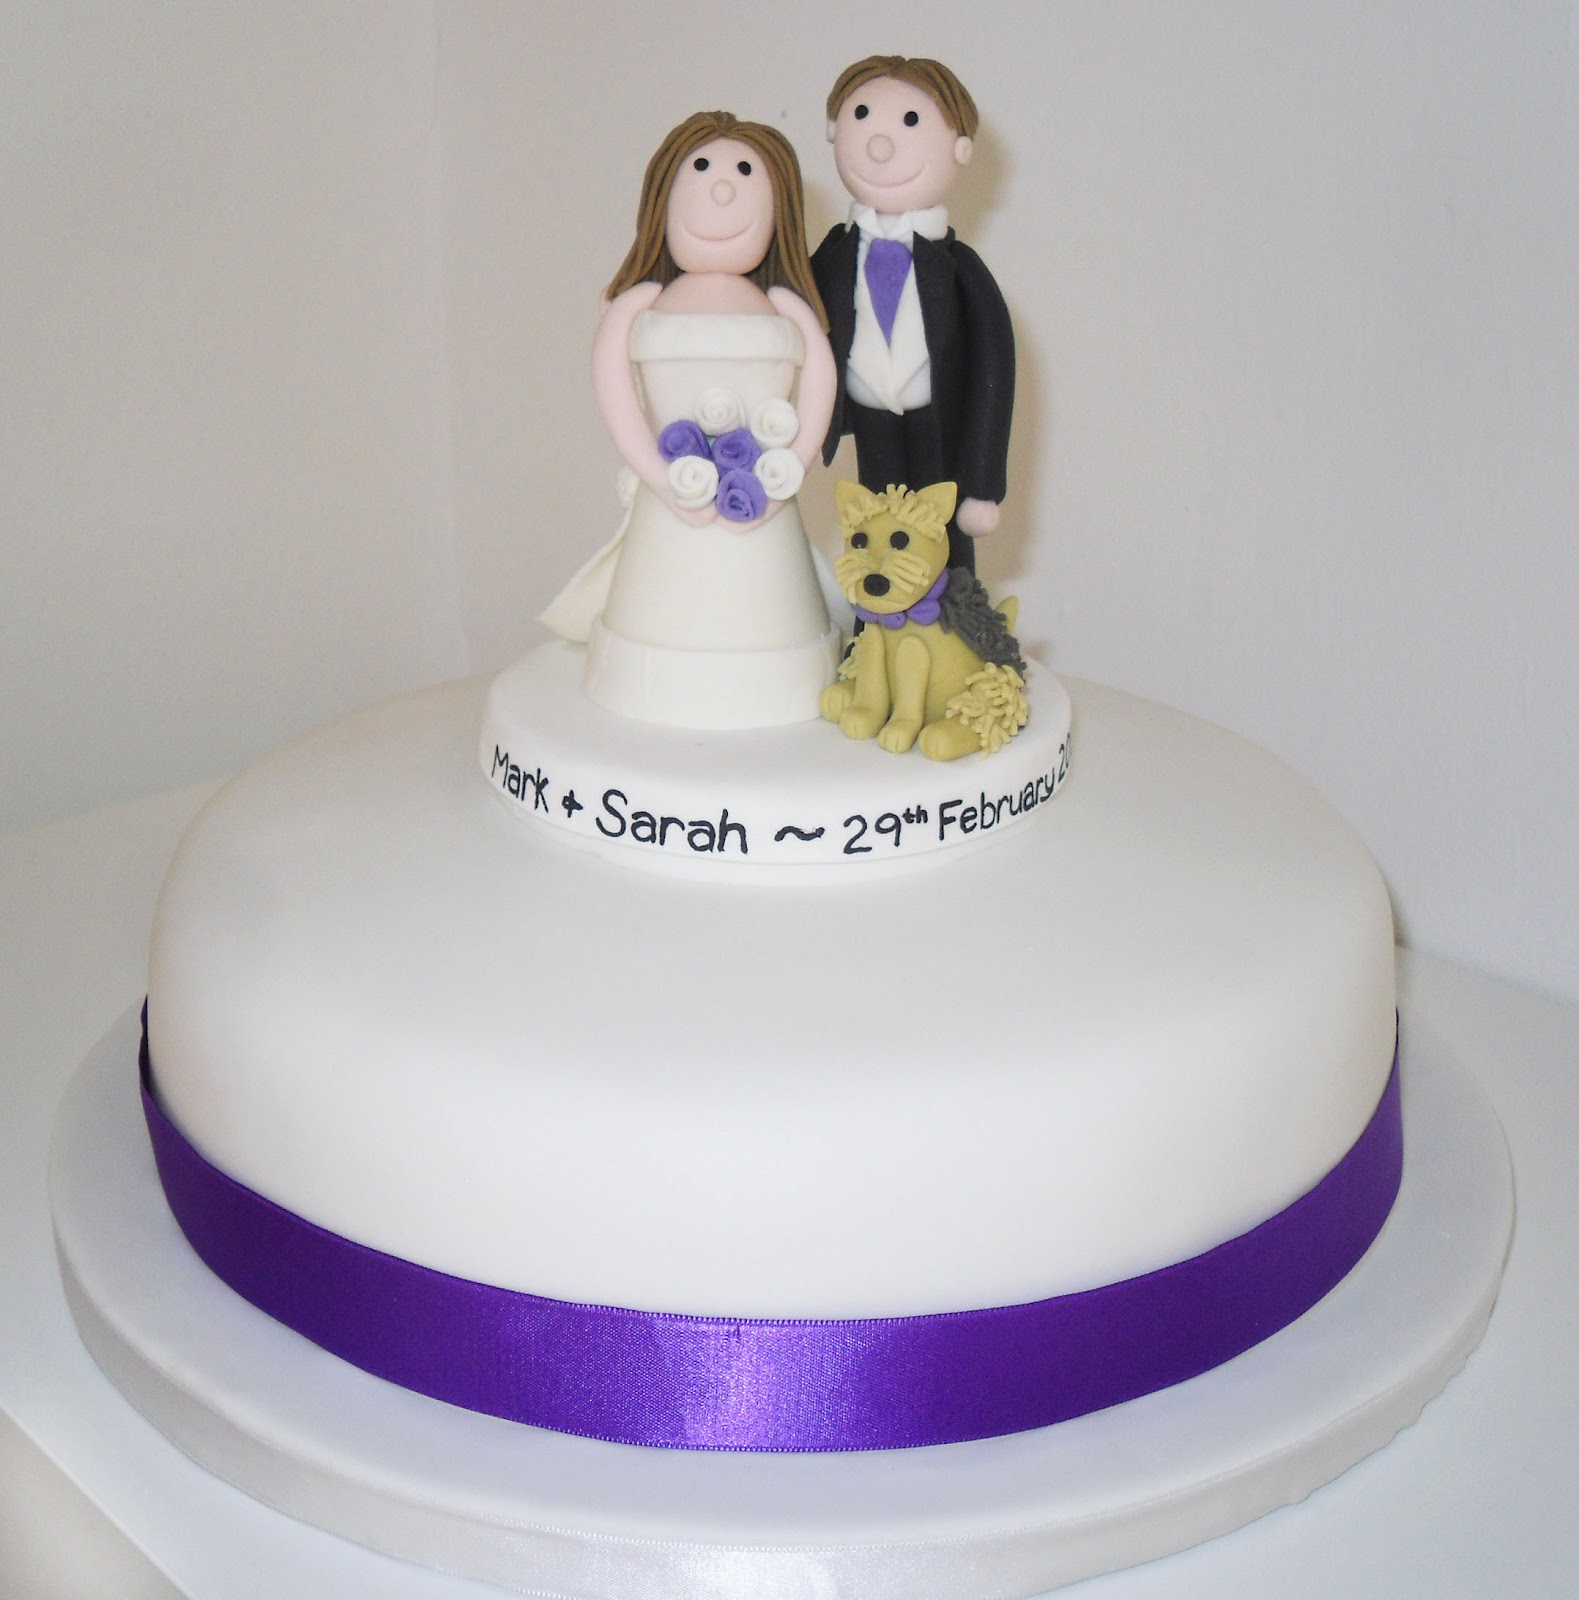 The Coloured Bubble Cakery Simple White Wedding Cake With Bride